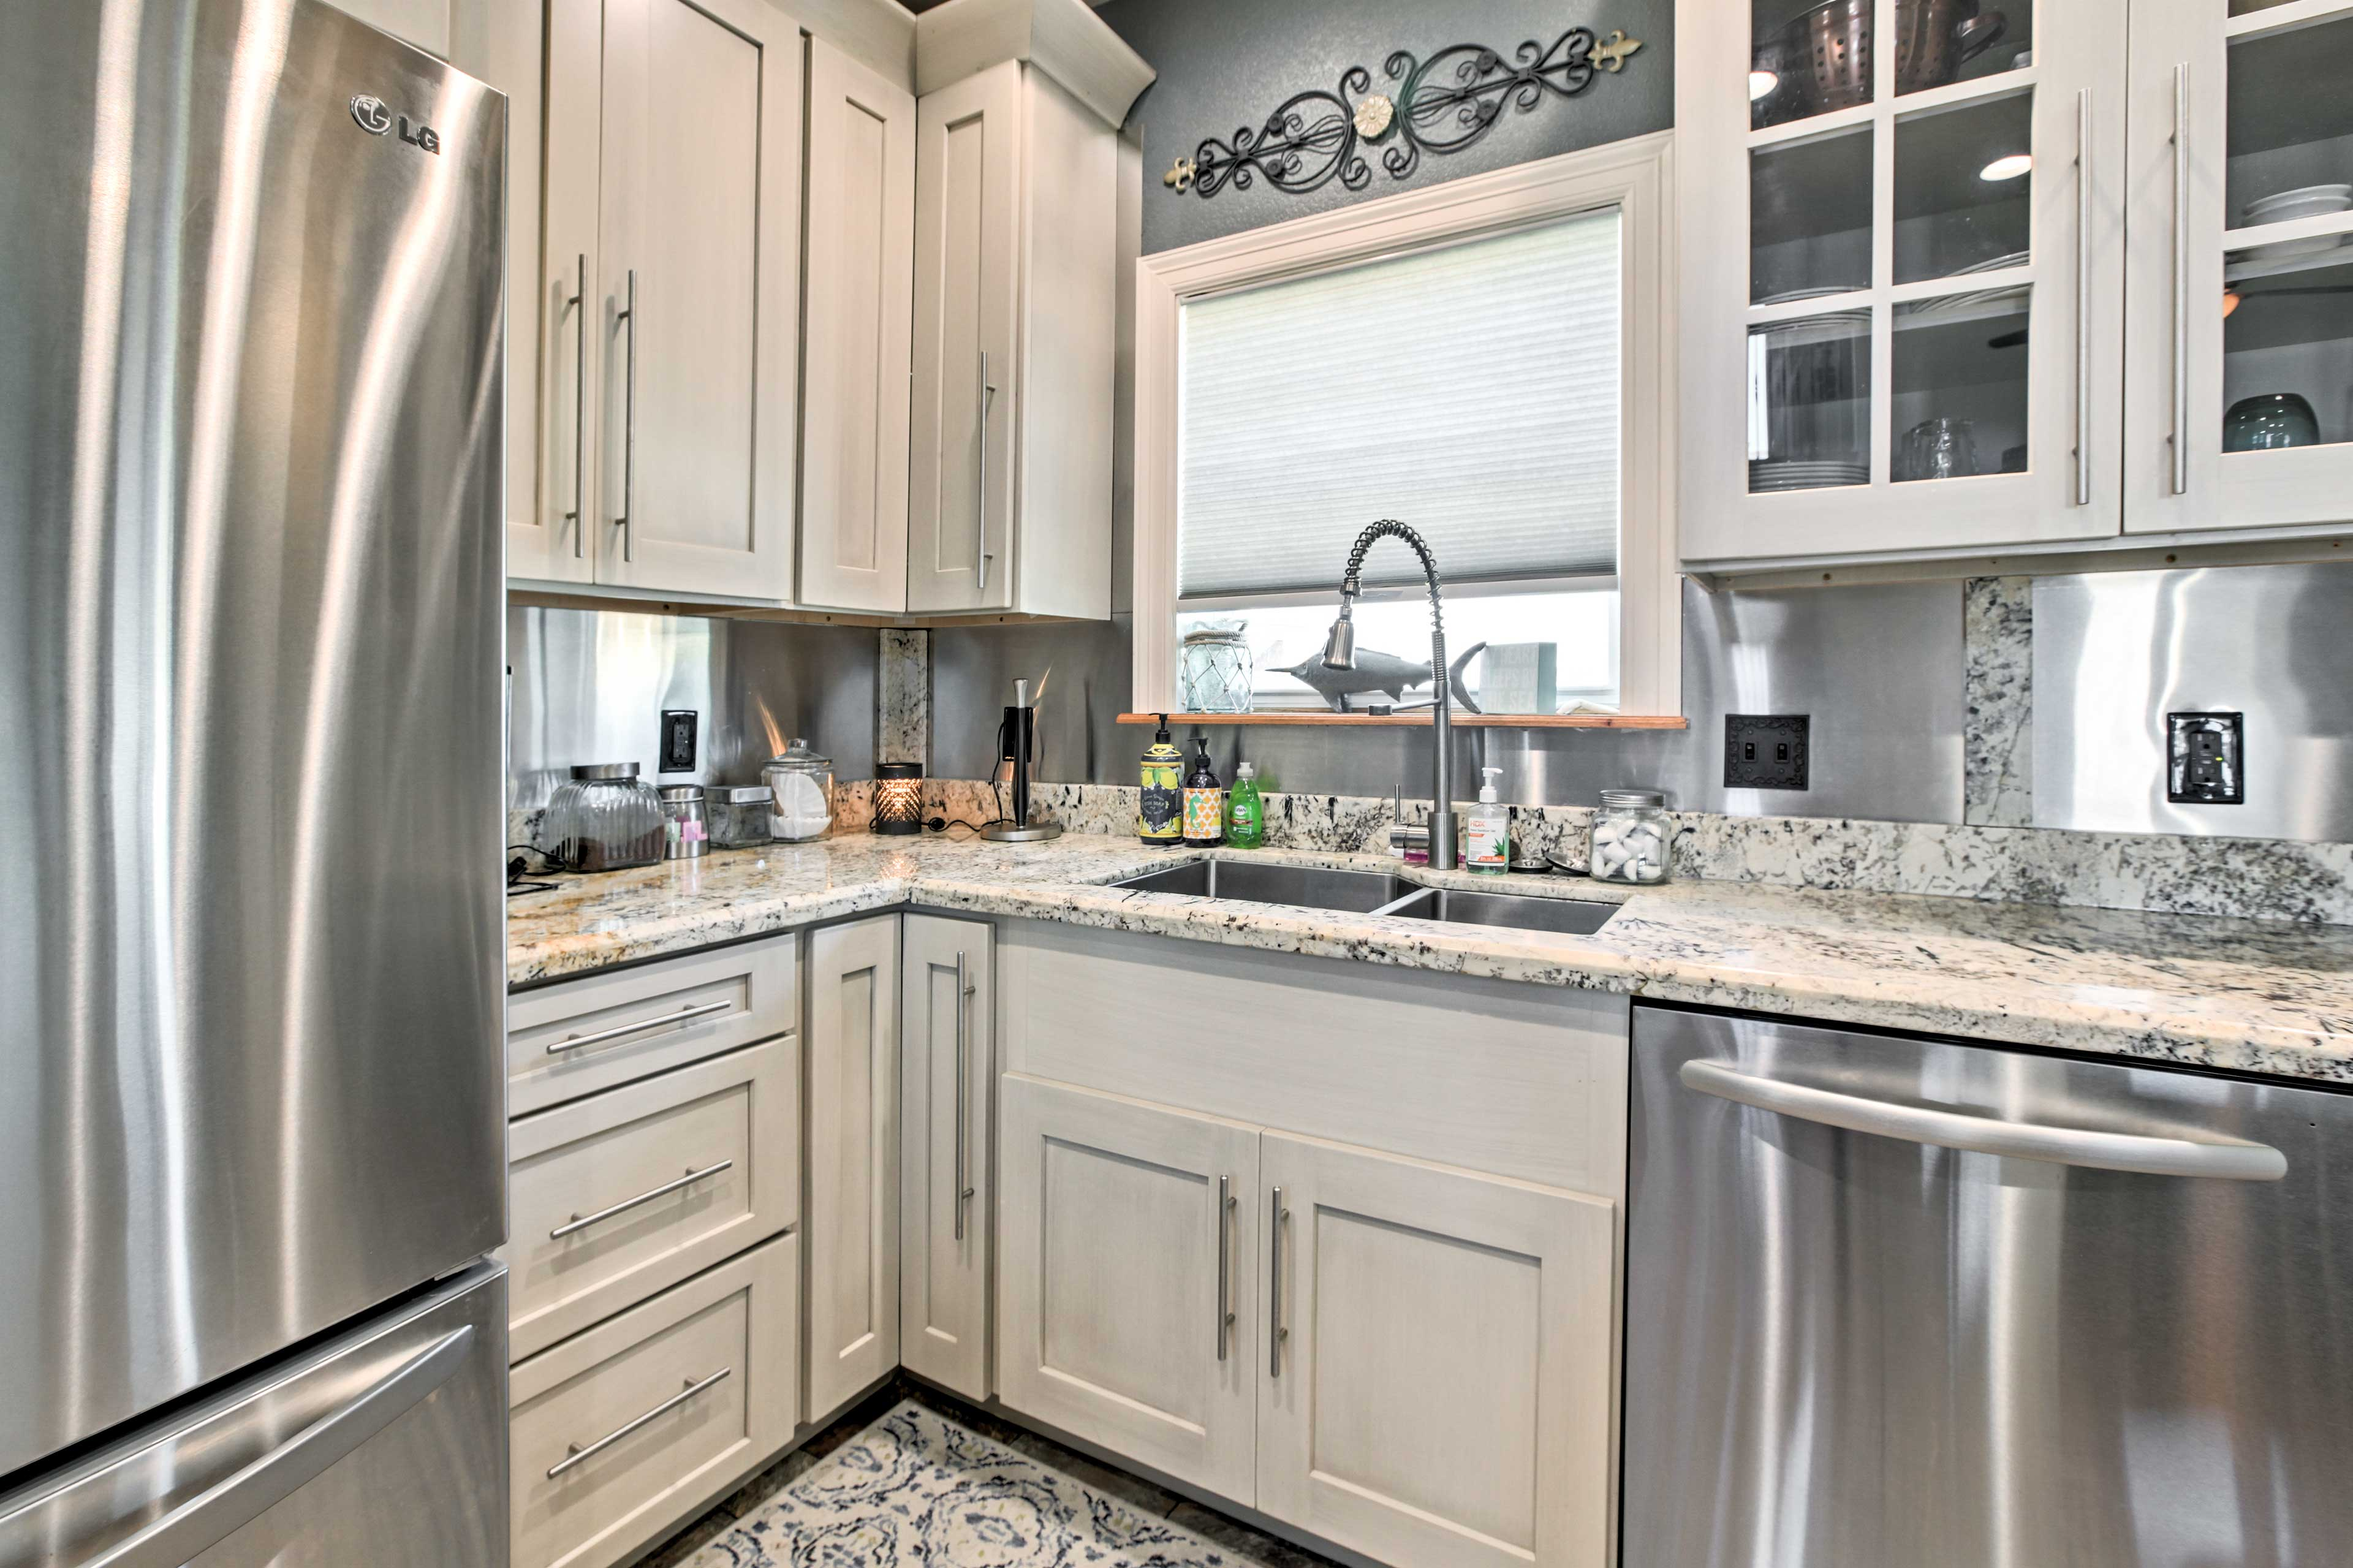 Stainless steel appliances and granite countertops set the tone for cooking.